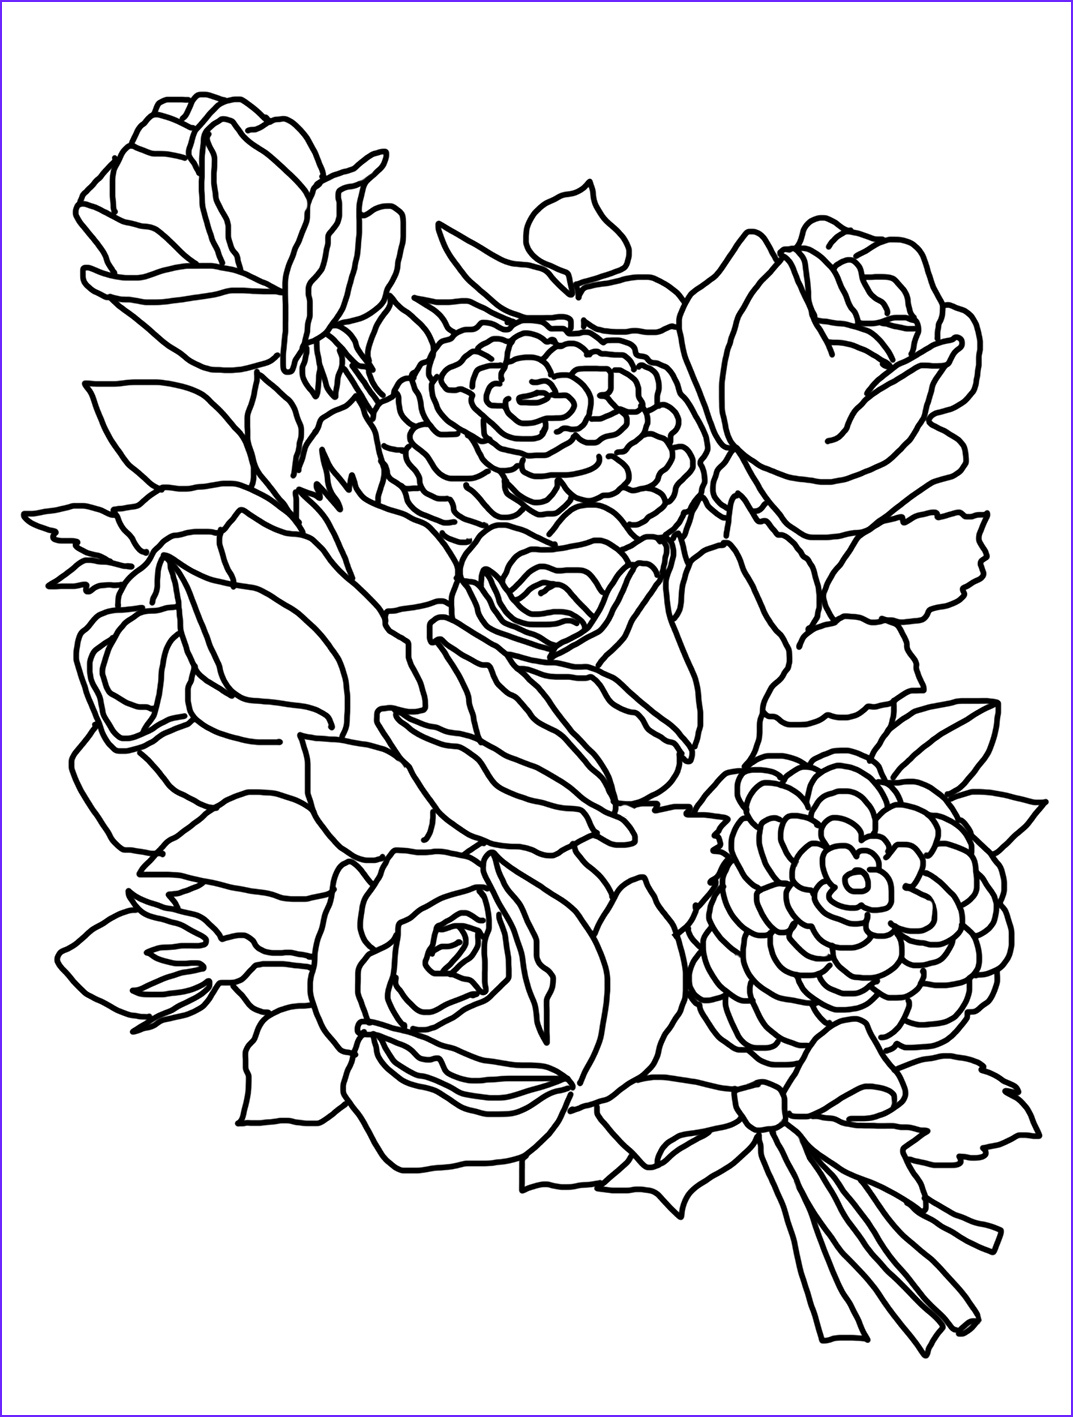 Coloring Book Flowers Cool Images Flower Coloring Pages